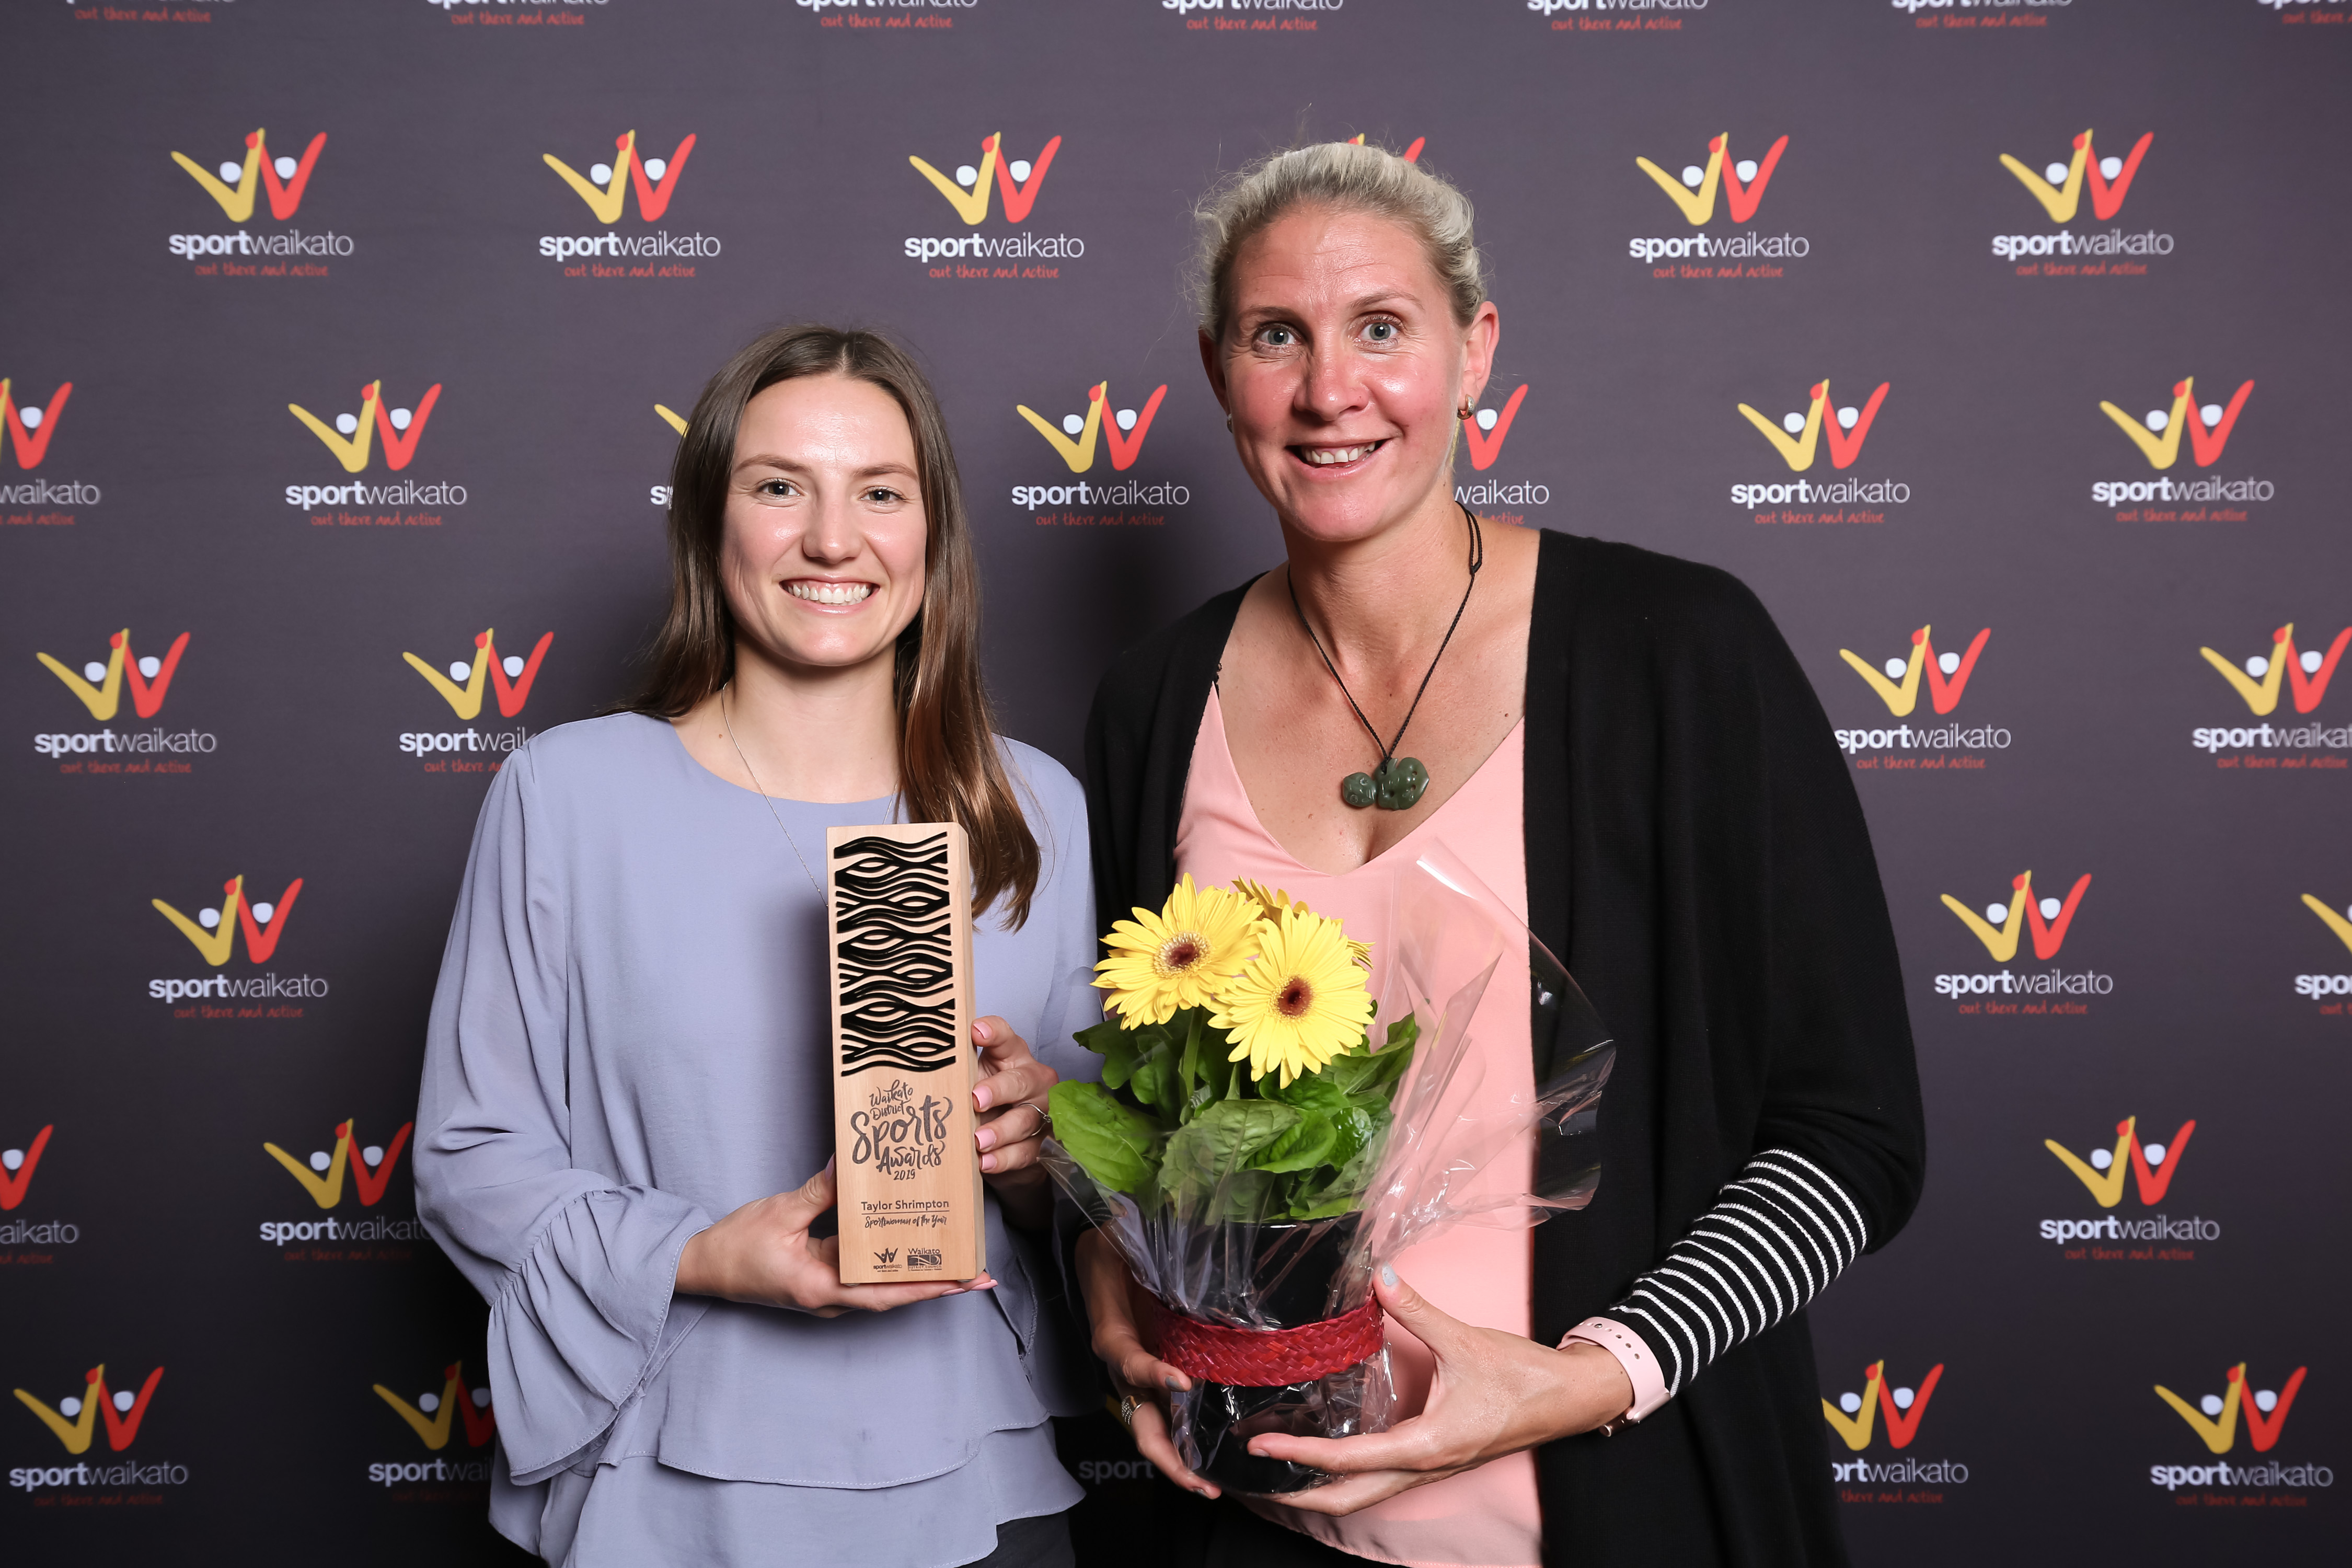 2019 Waikato District Sports Awards winners announced!